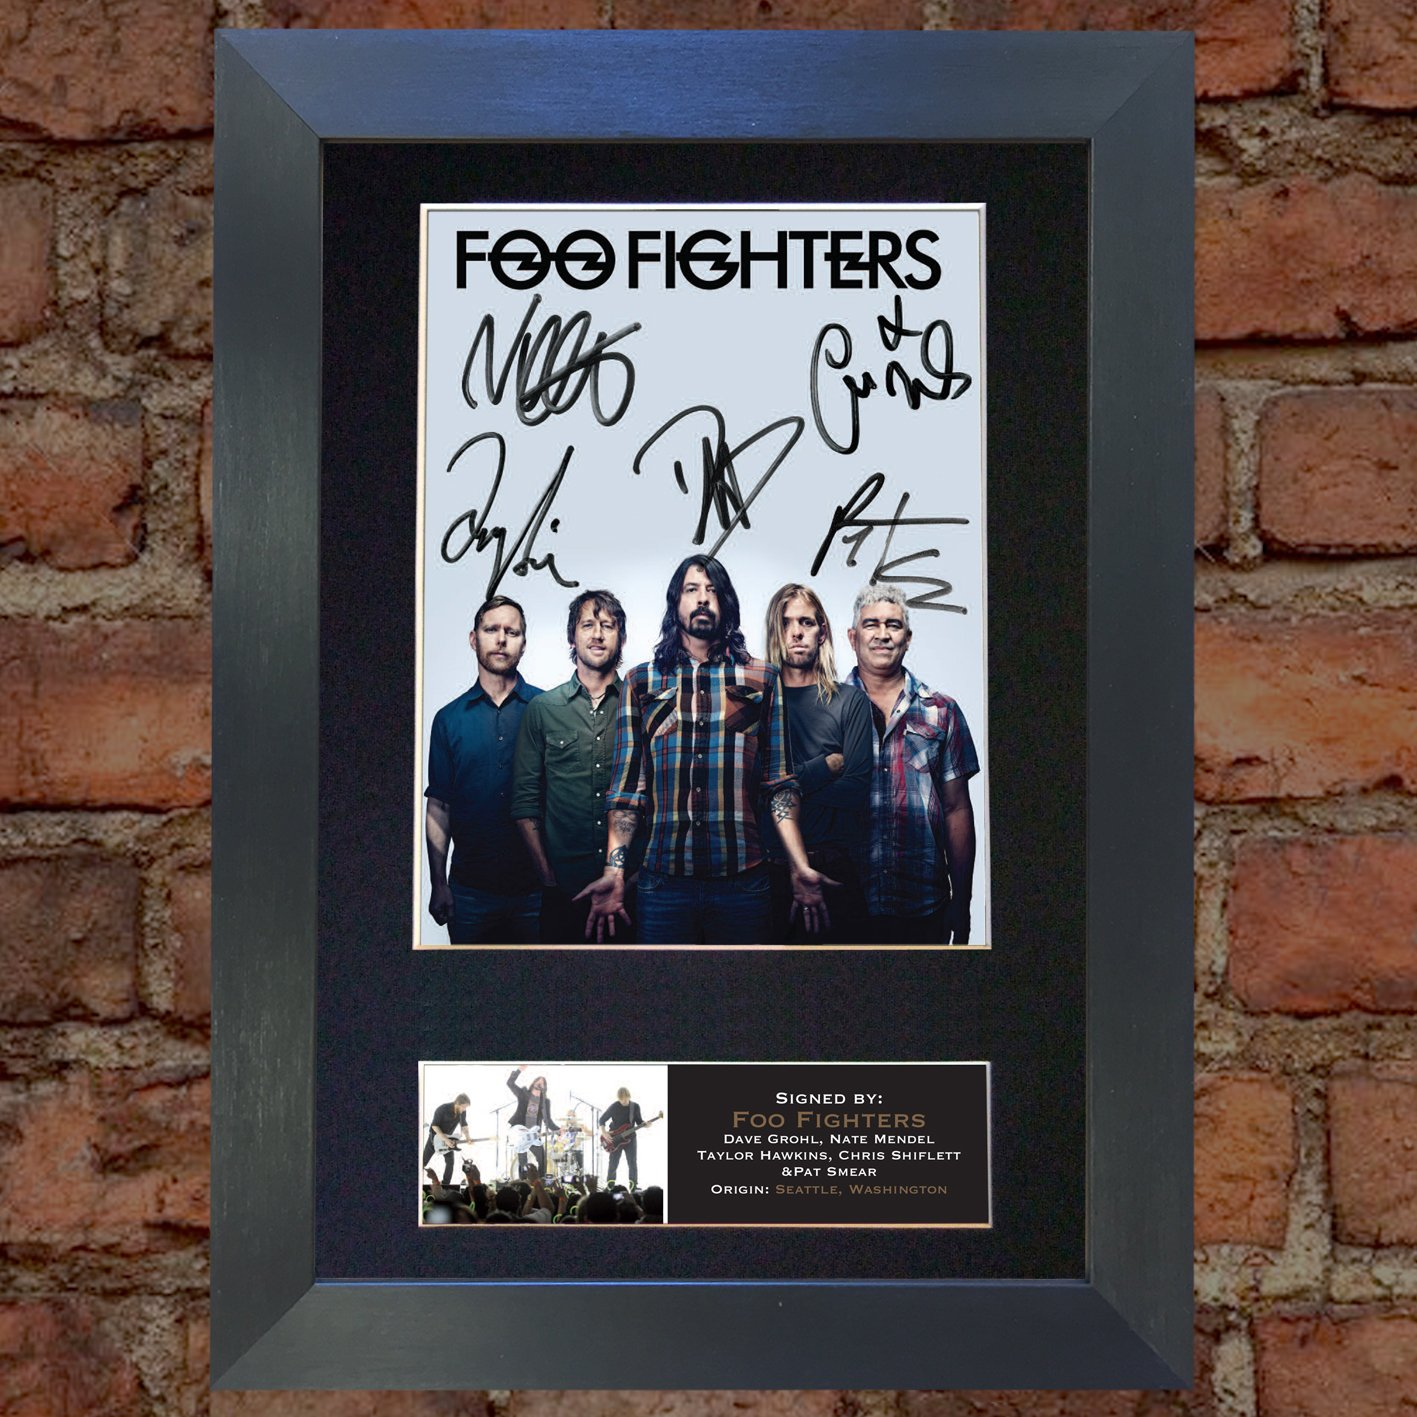 #597 297 x 210mm FOO FIGHTERS No2 Top Quality Signed Autograph Mounted Photo Reproduction PRINT A4 Rare Black Frame